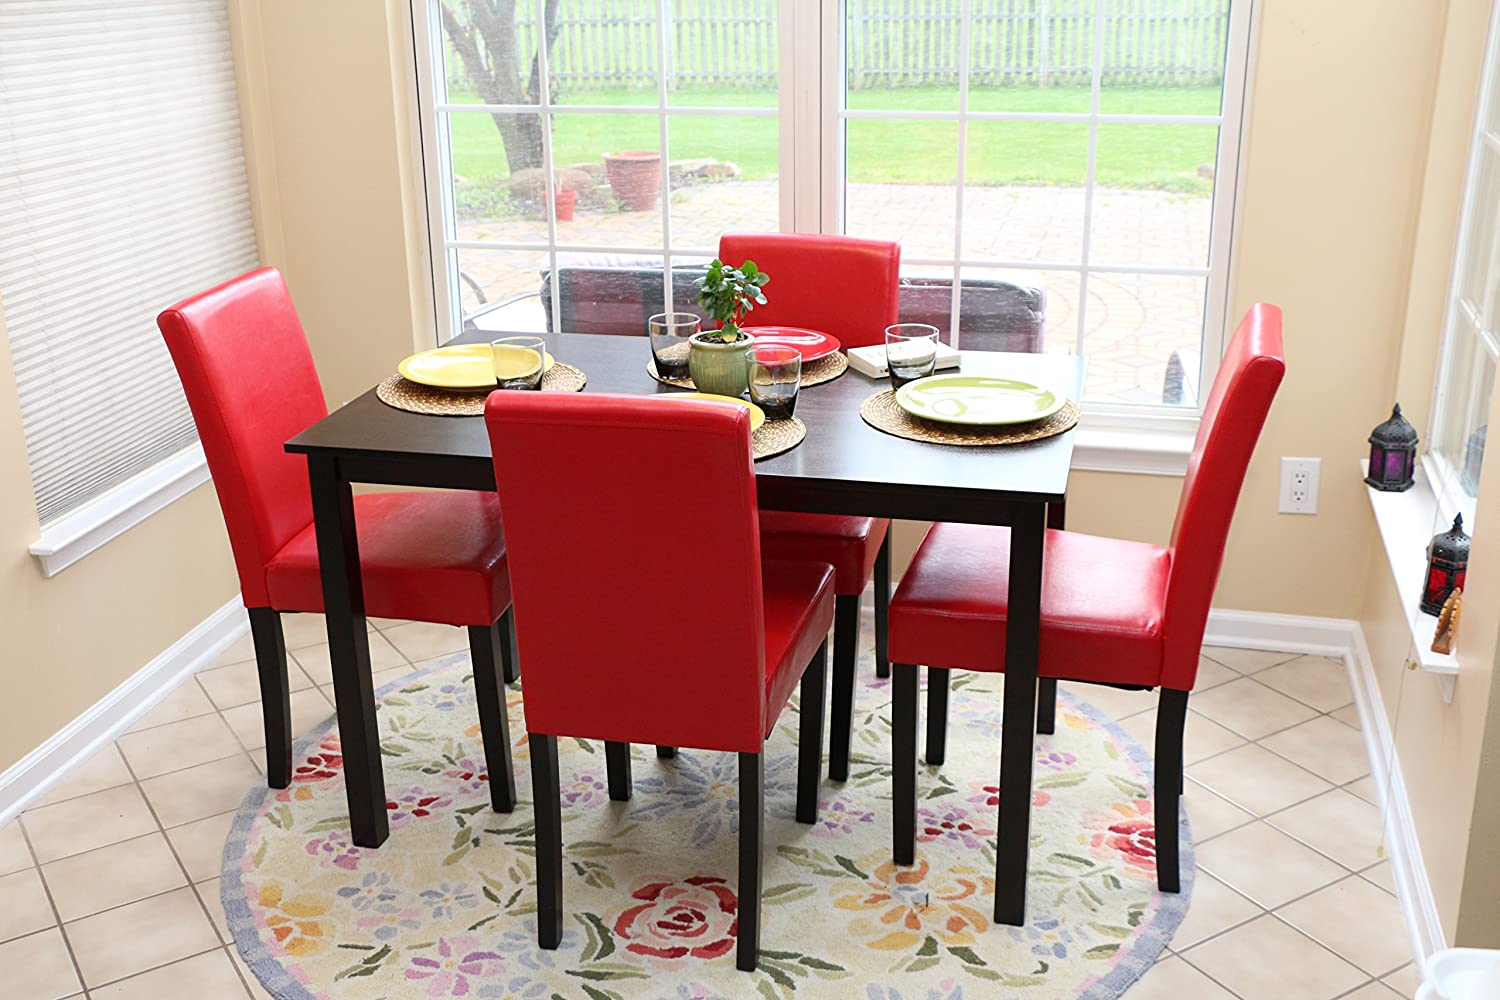 B red kitchen table Amazon com 5 PC Red Leather 4 Person Table and Chairs red Dining Dinette Red Parson Chair Table Chair Sets